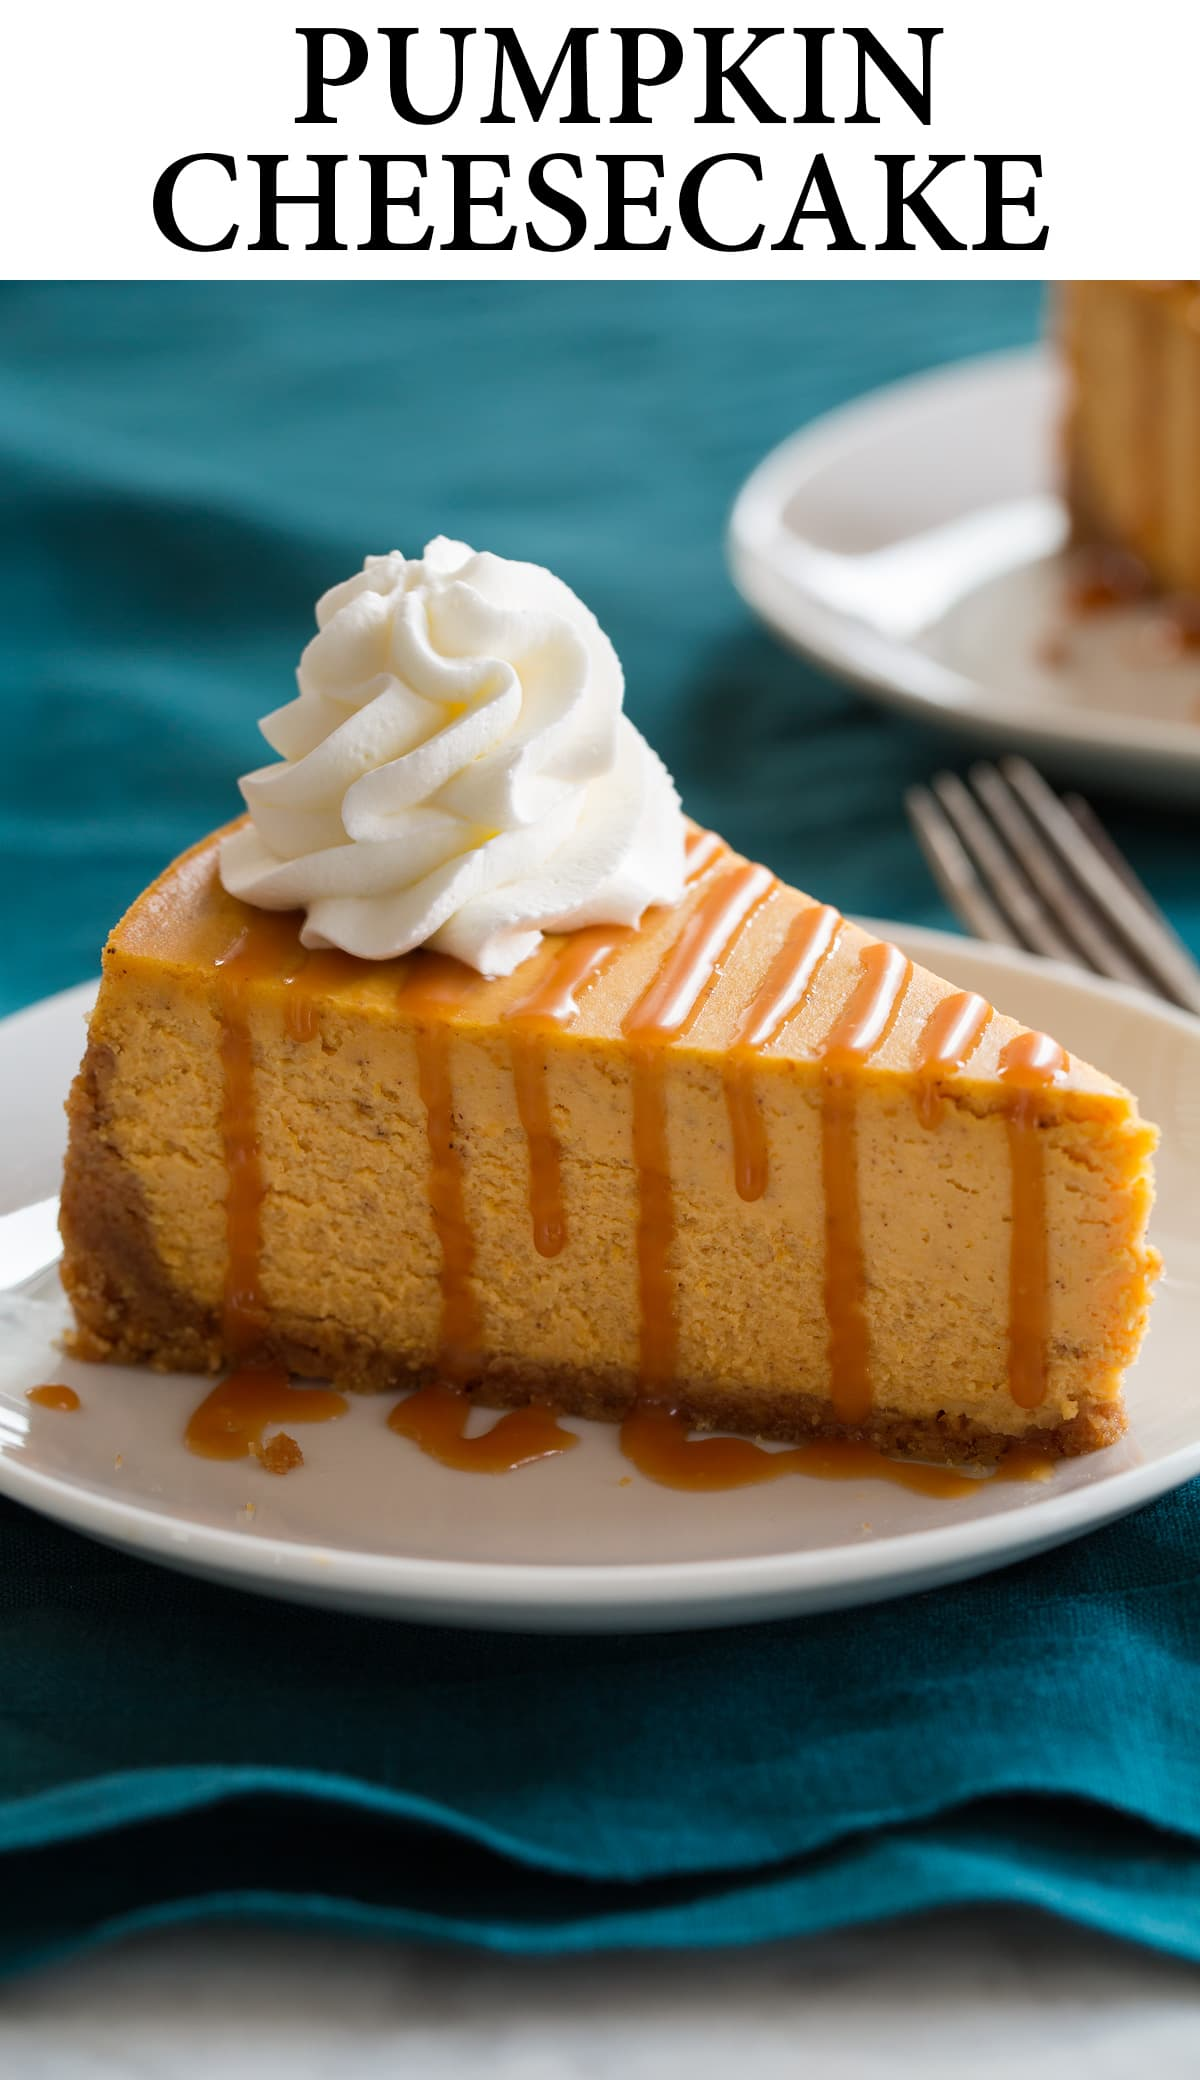 Pumpkin Cheesecake Recipe Cooking Classy